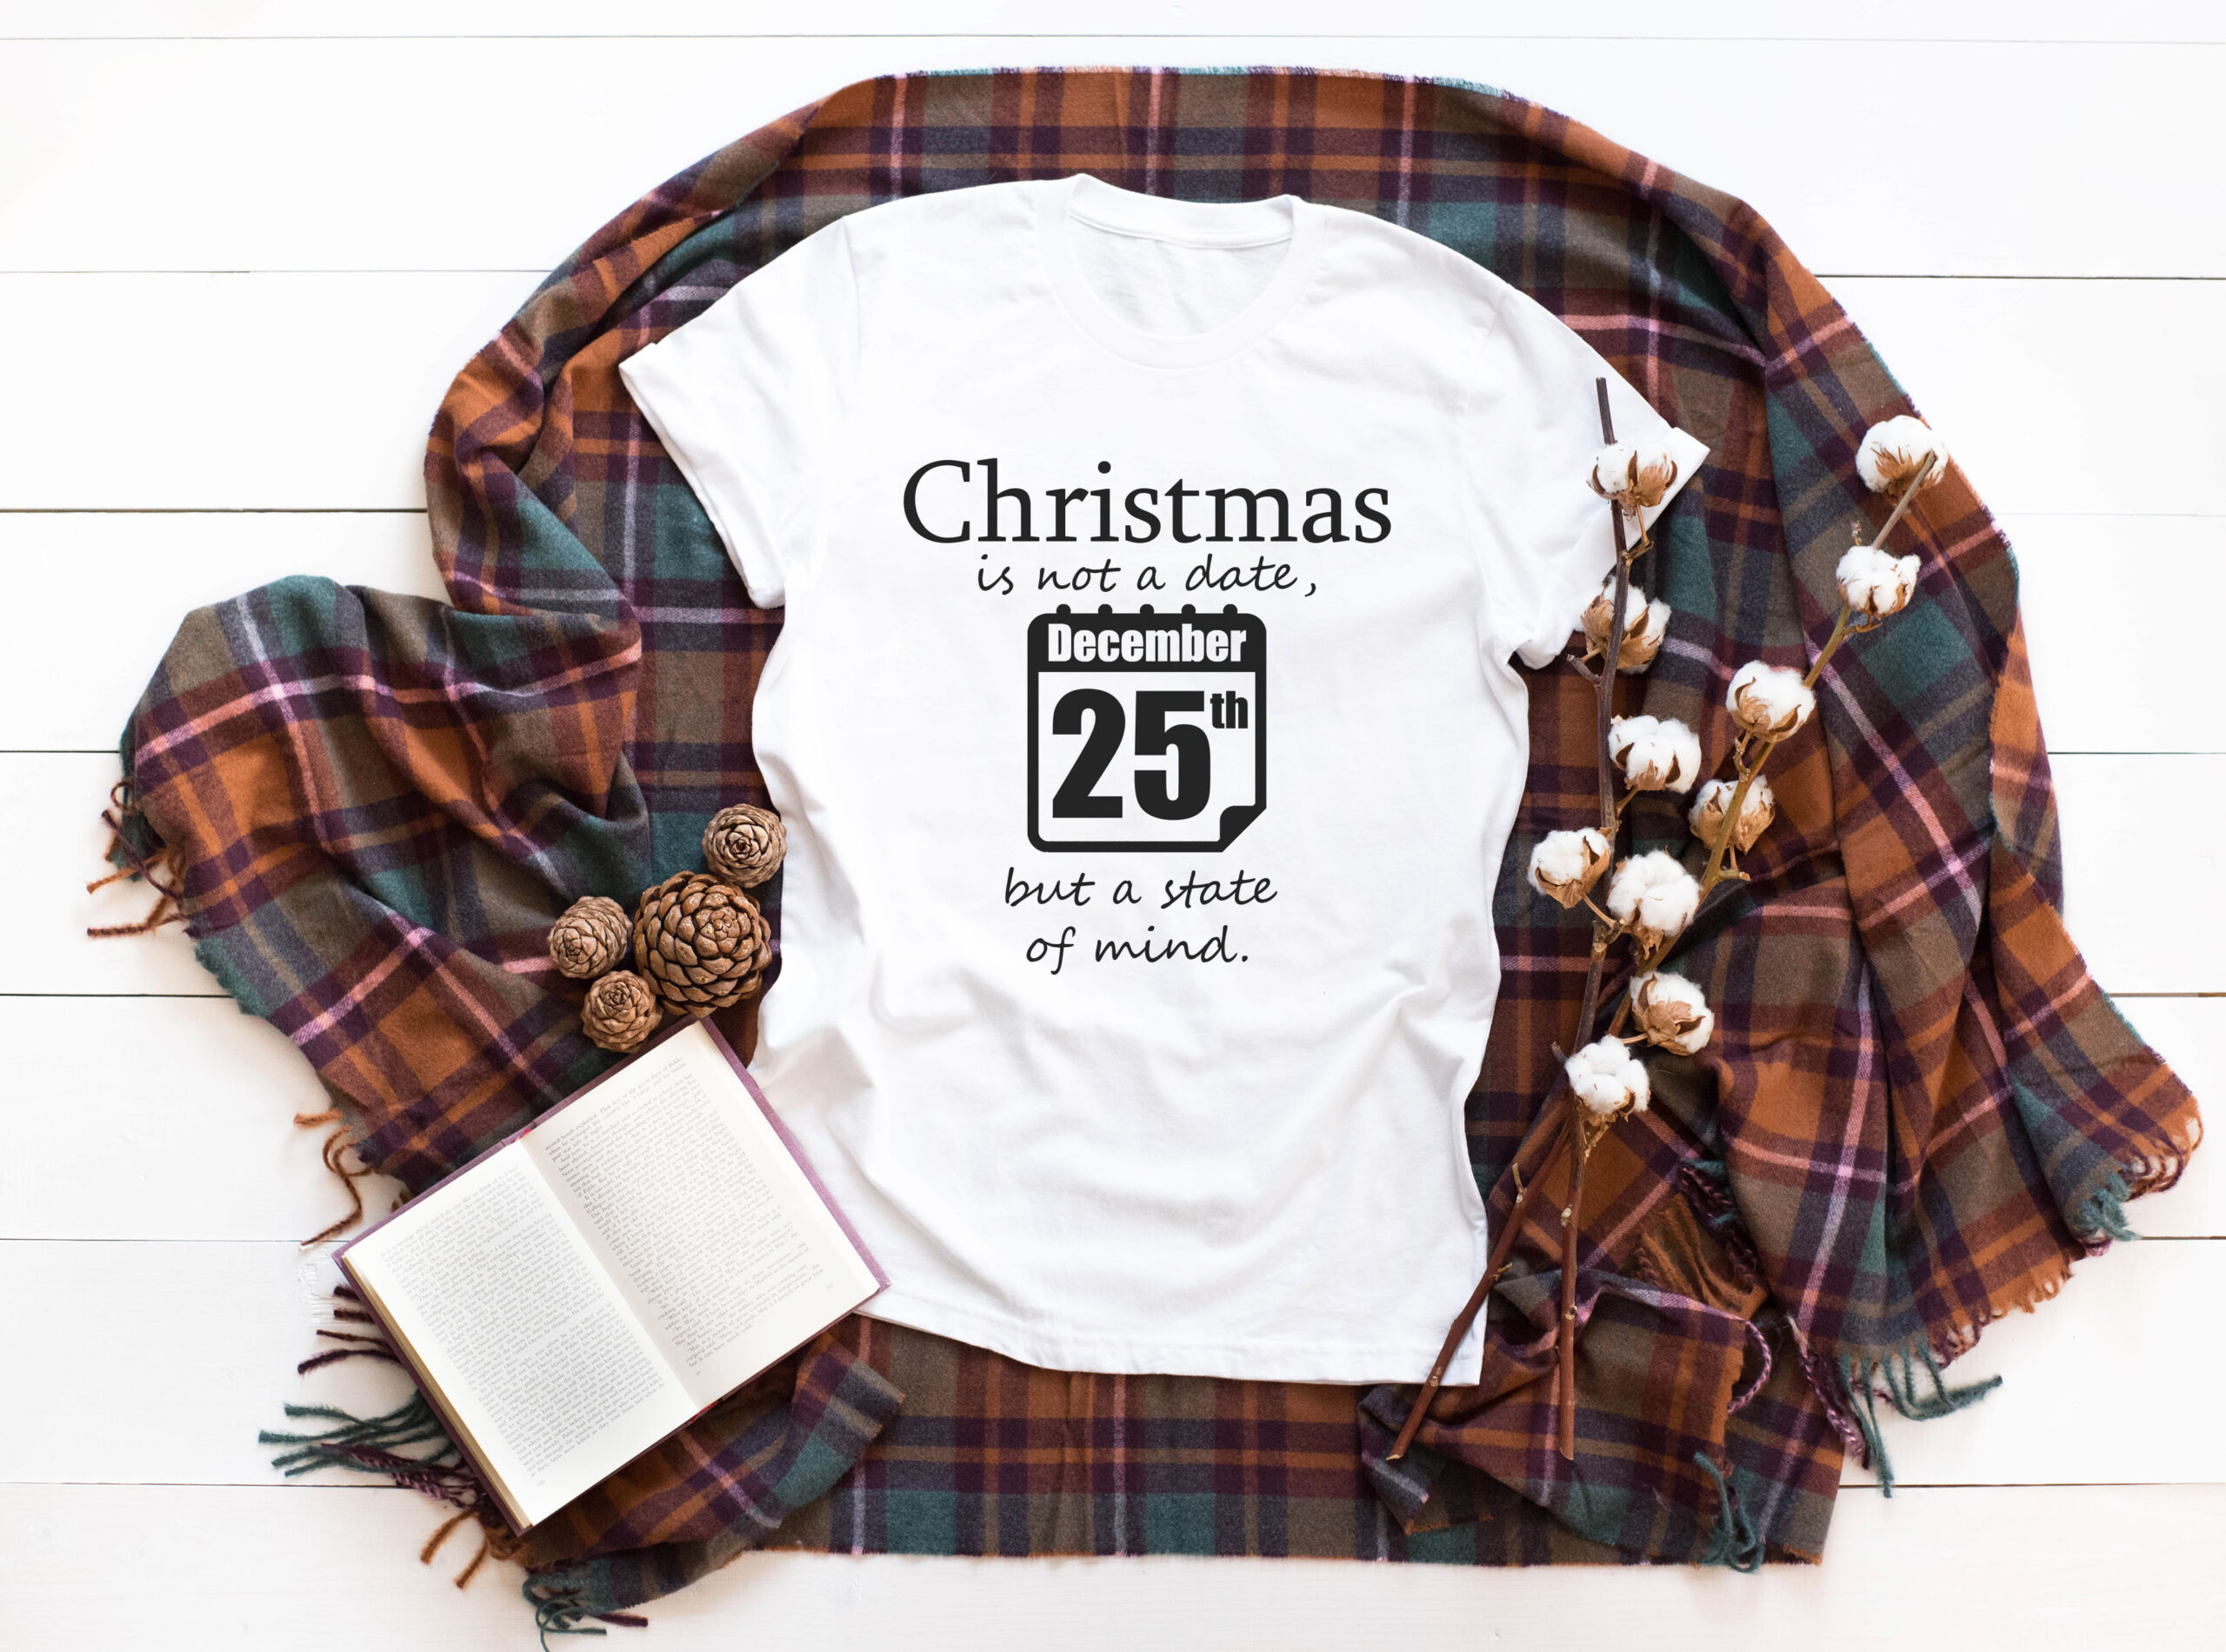 Free Christmas is not a date SVG File